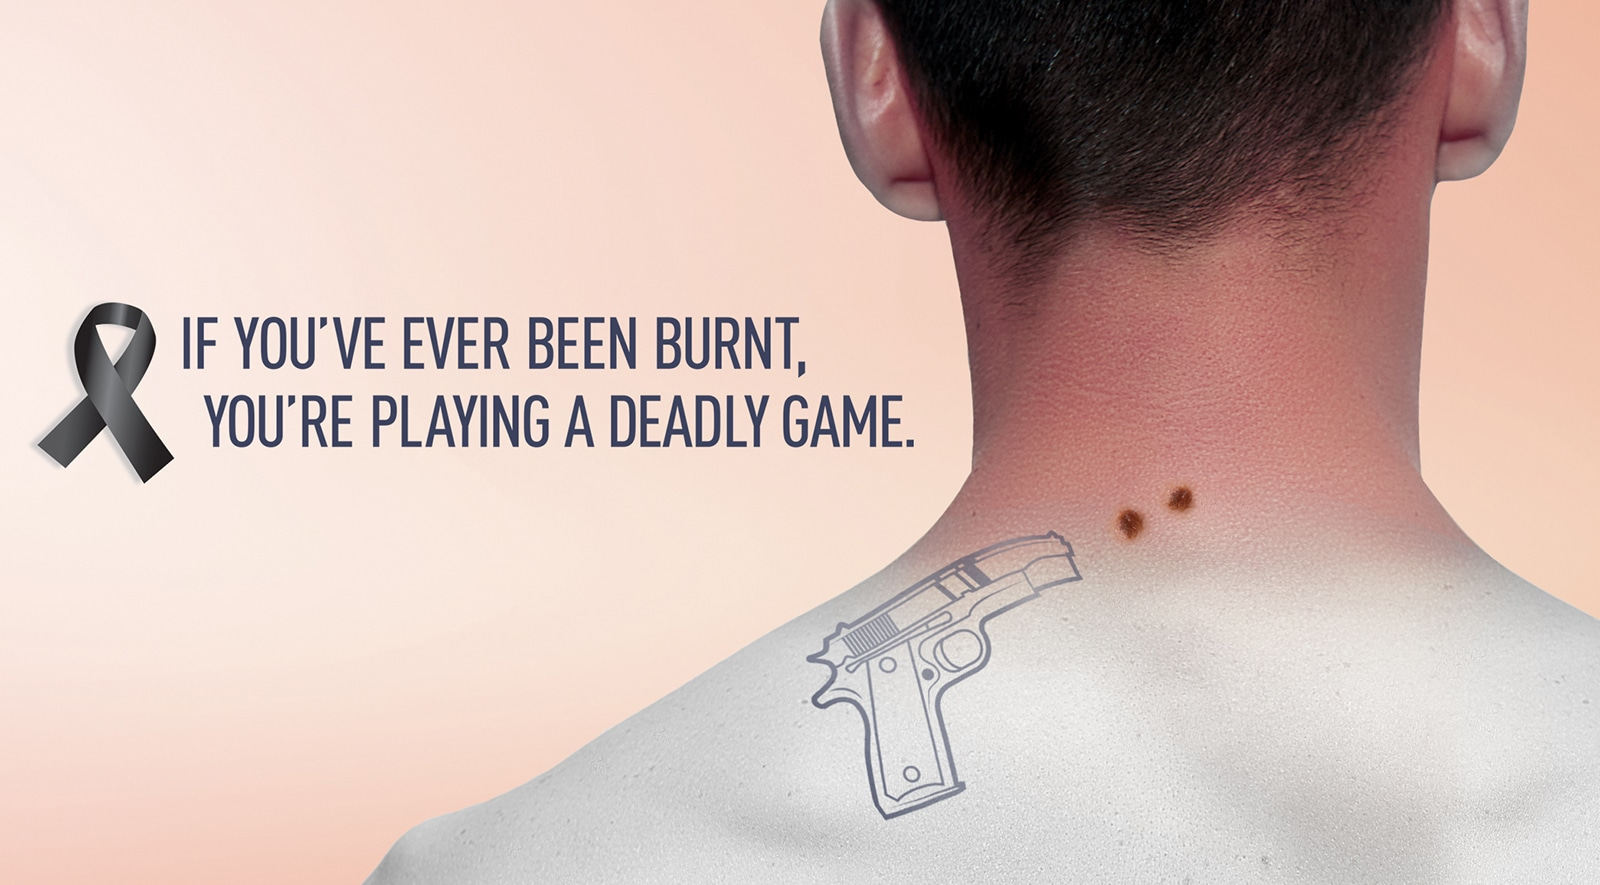 If you've ever been burnt ad